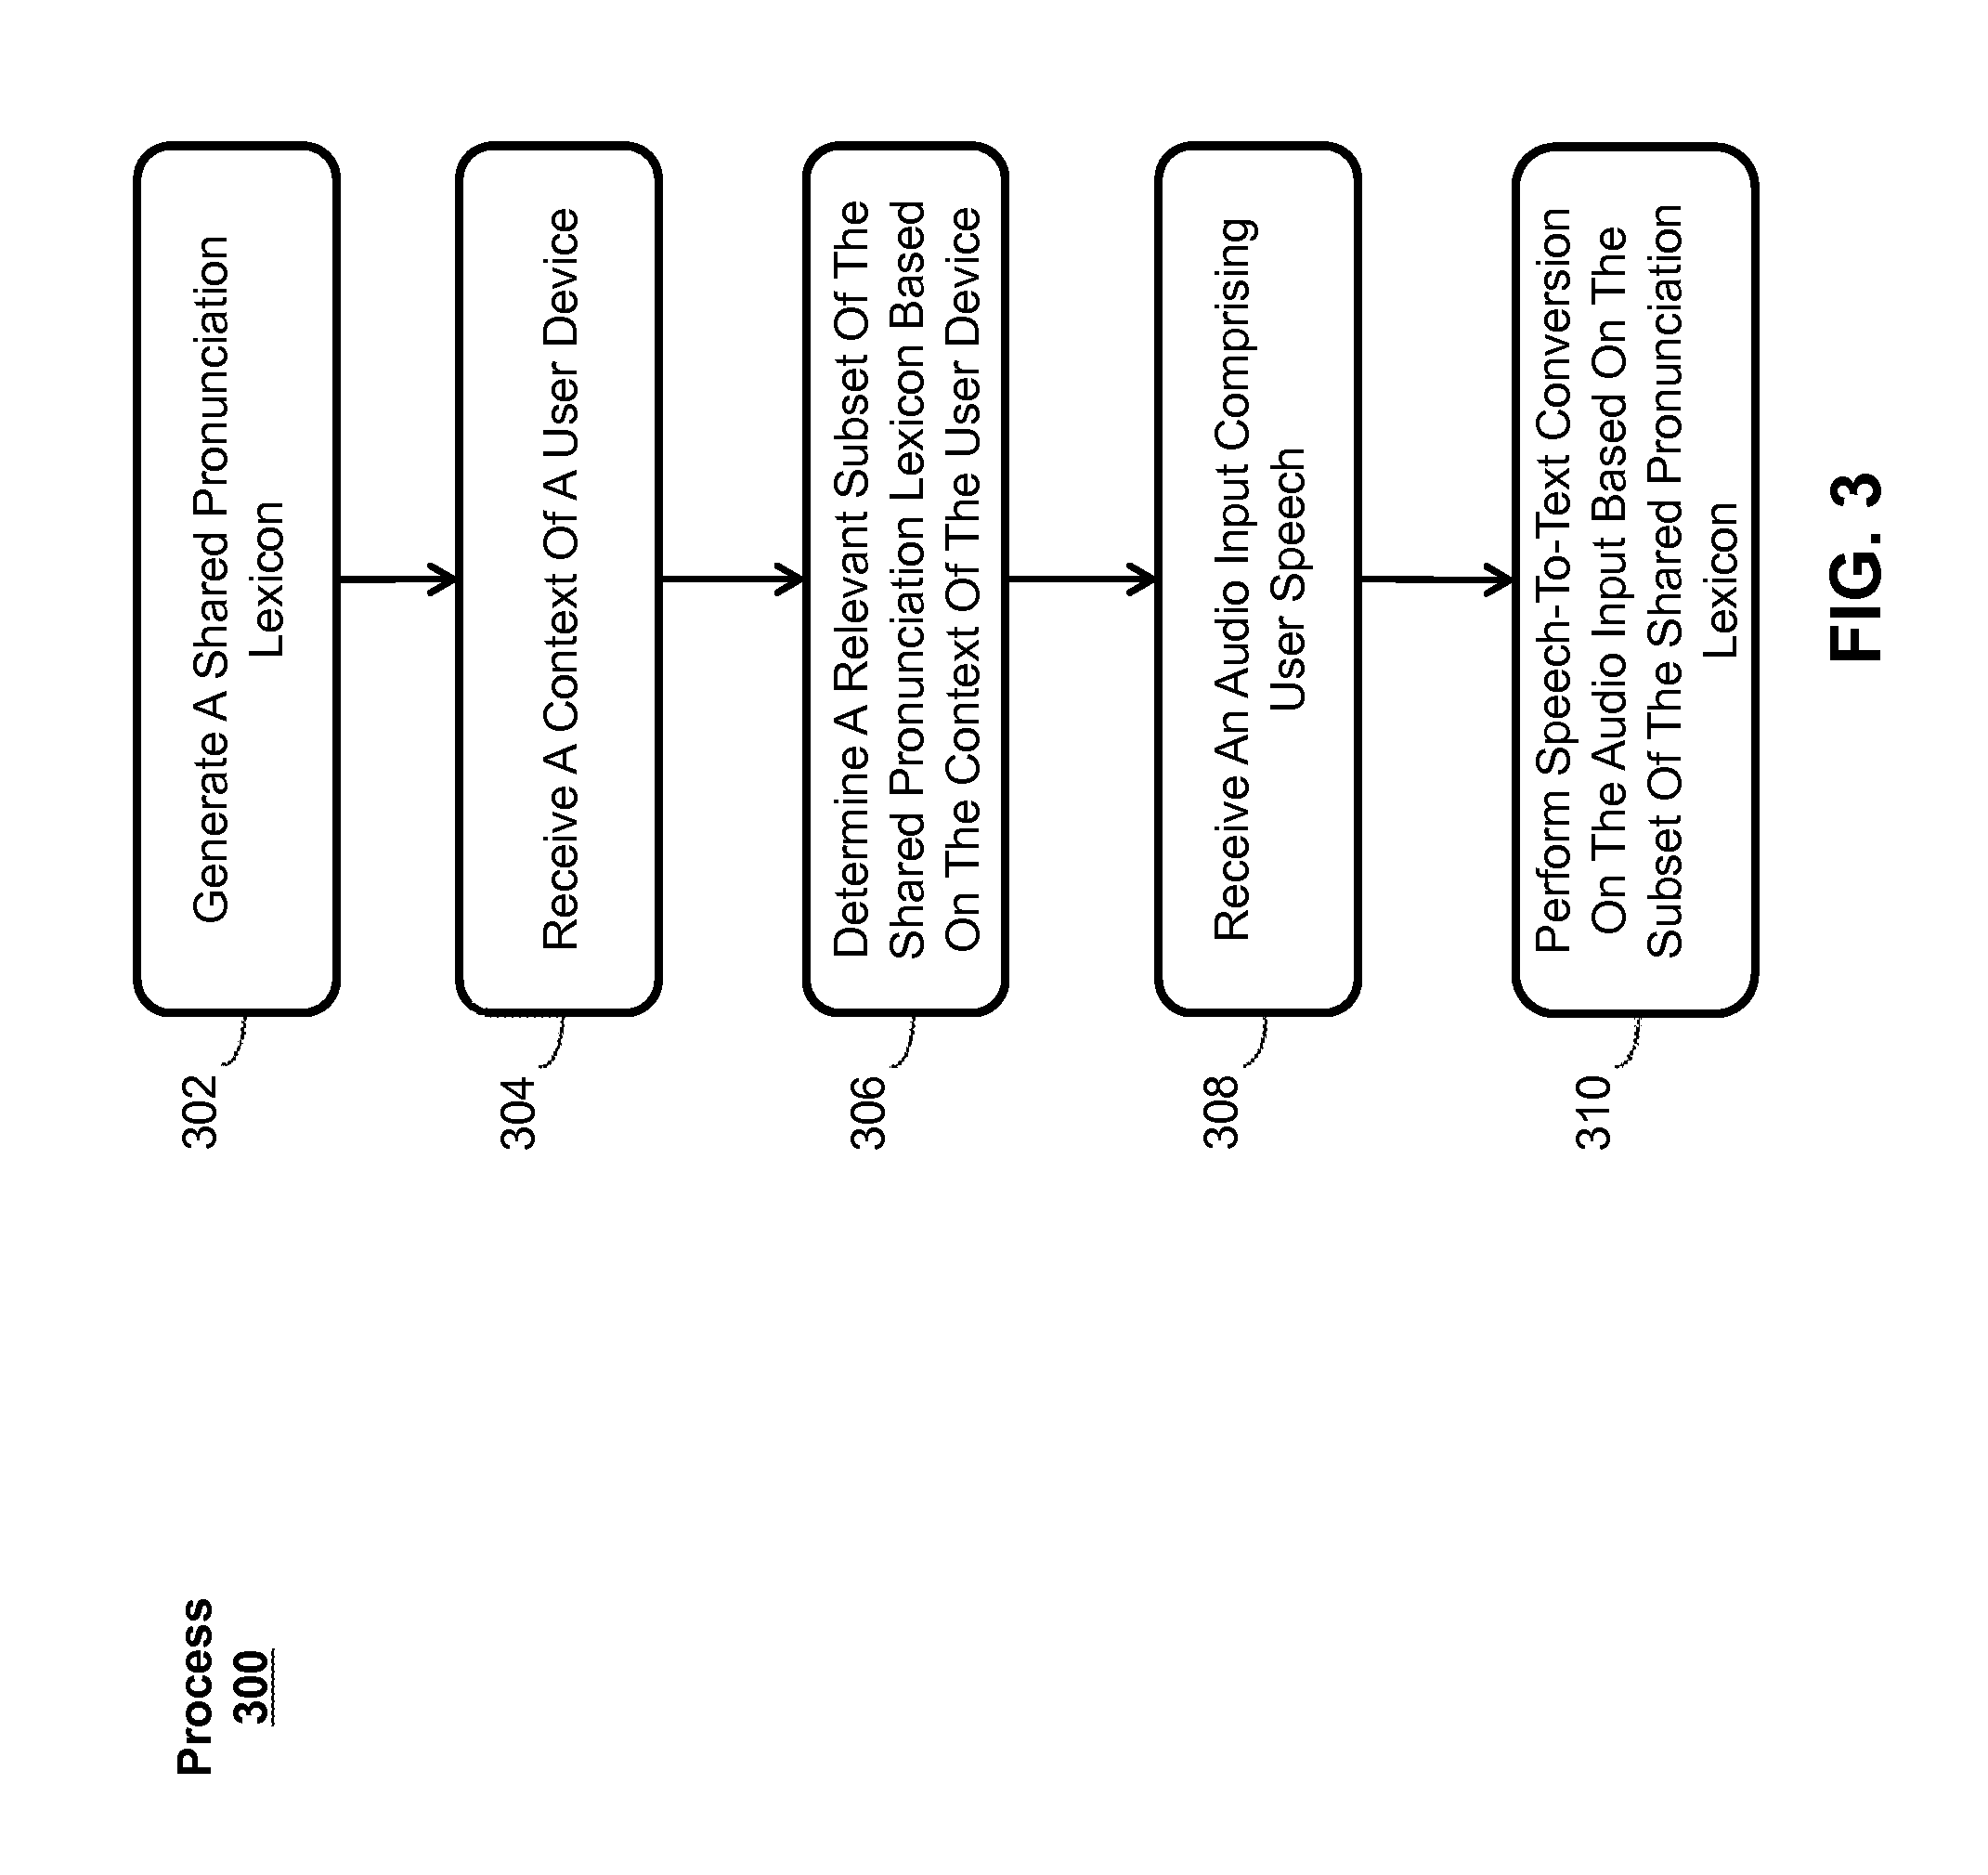 US20160093298A1 - Caching apparatus for serving phonetic